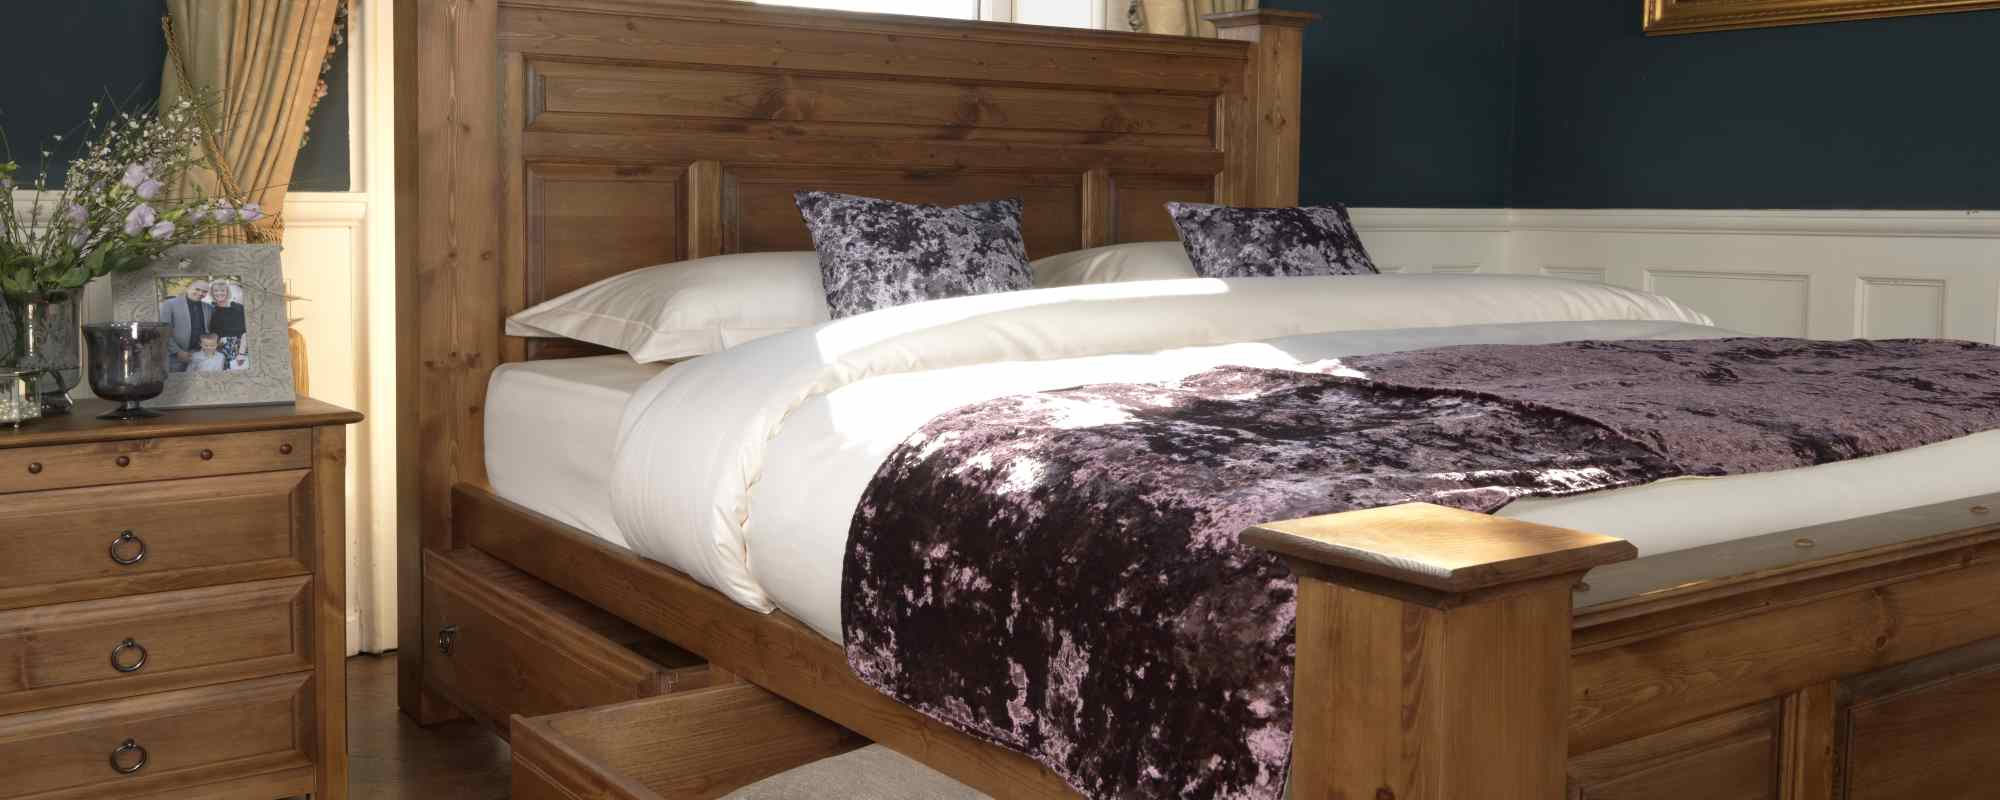 Luxury Beds Any Size Handcrafted To Your Requirements Revival Beds